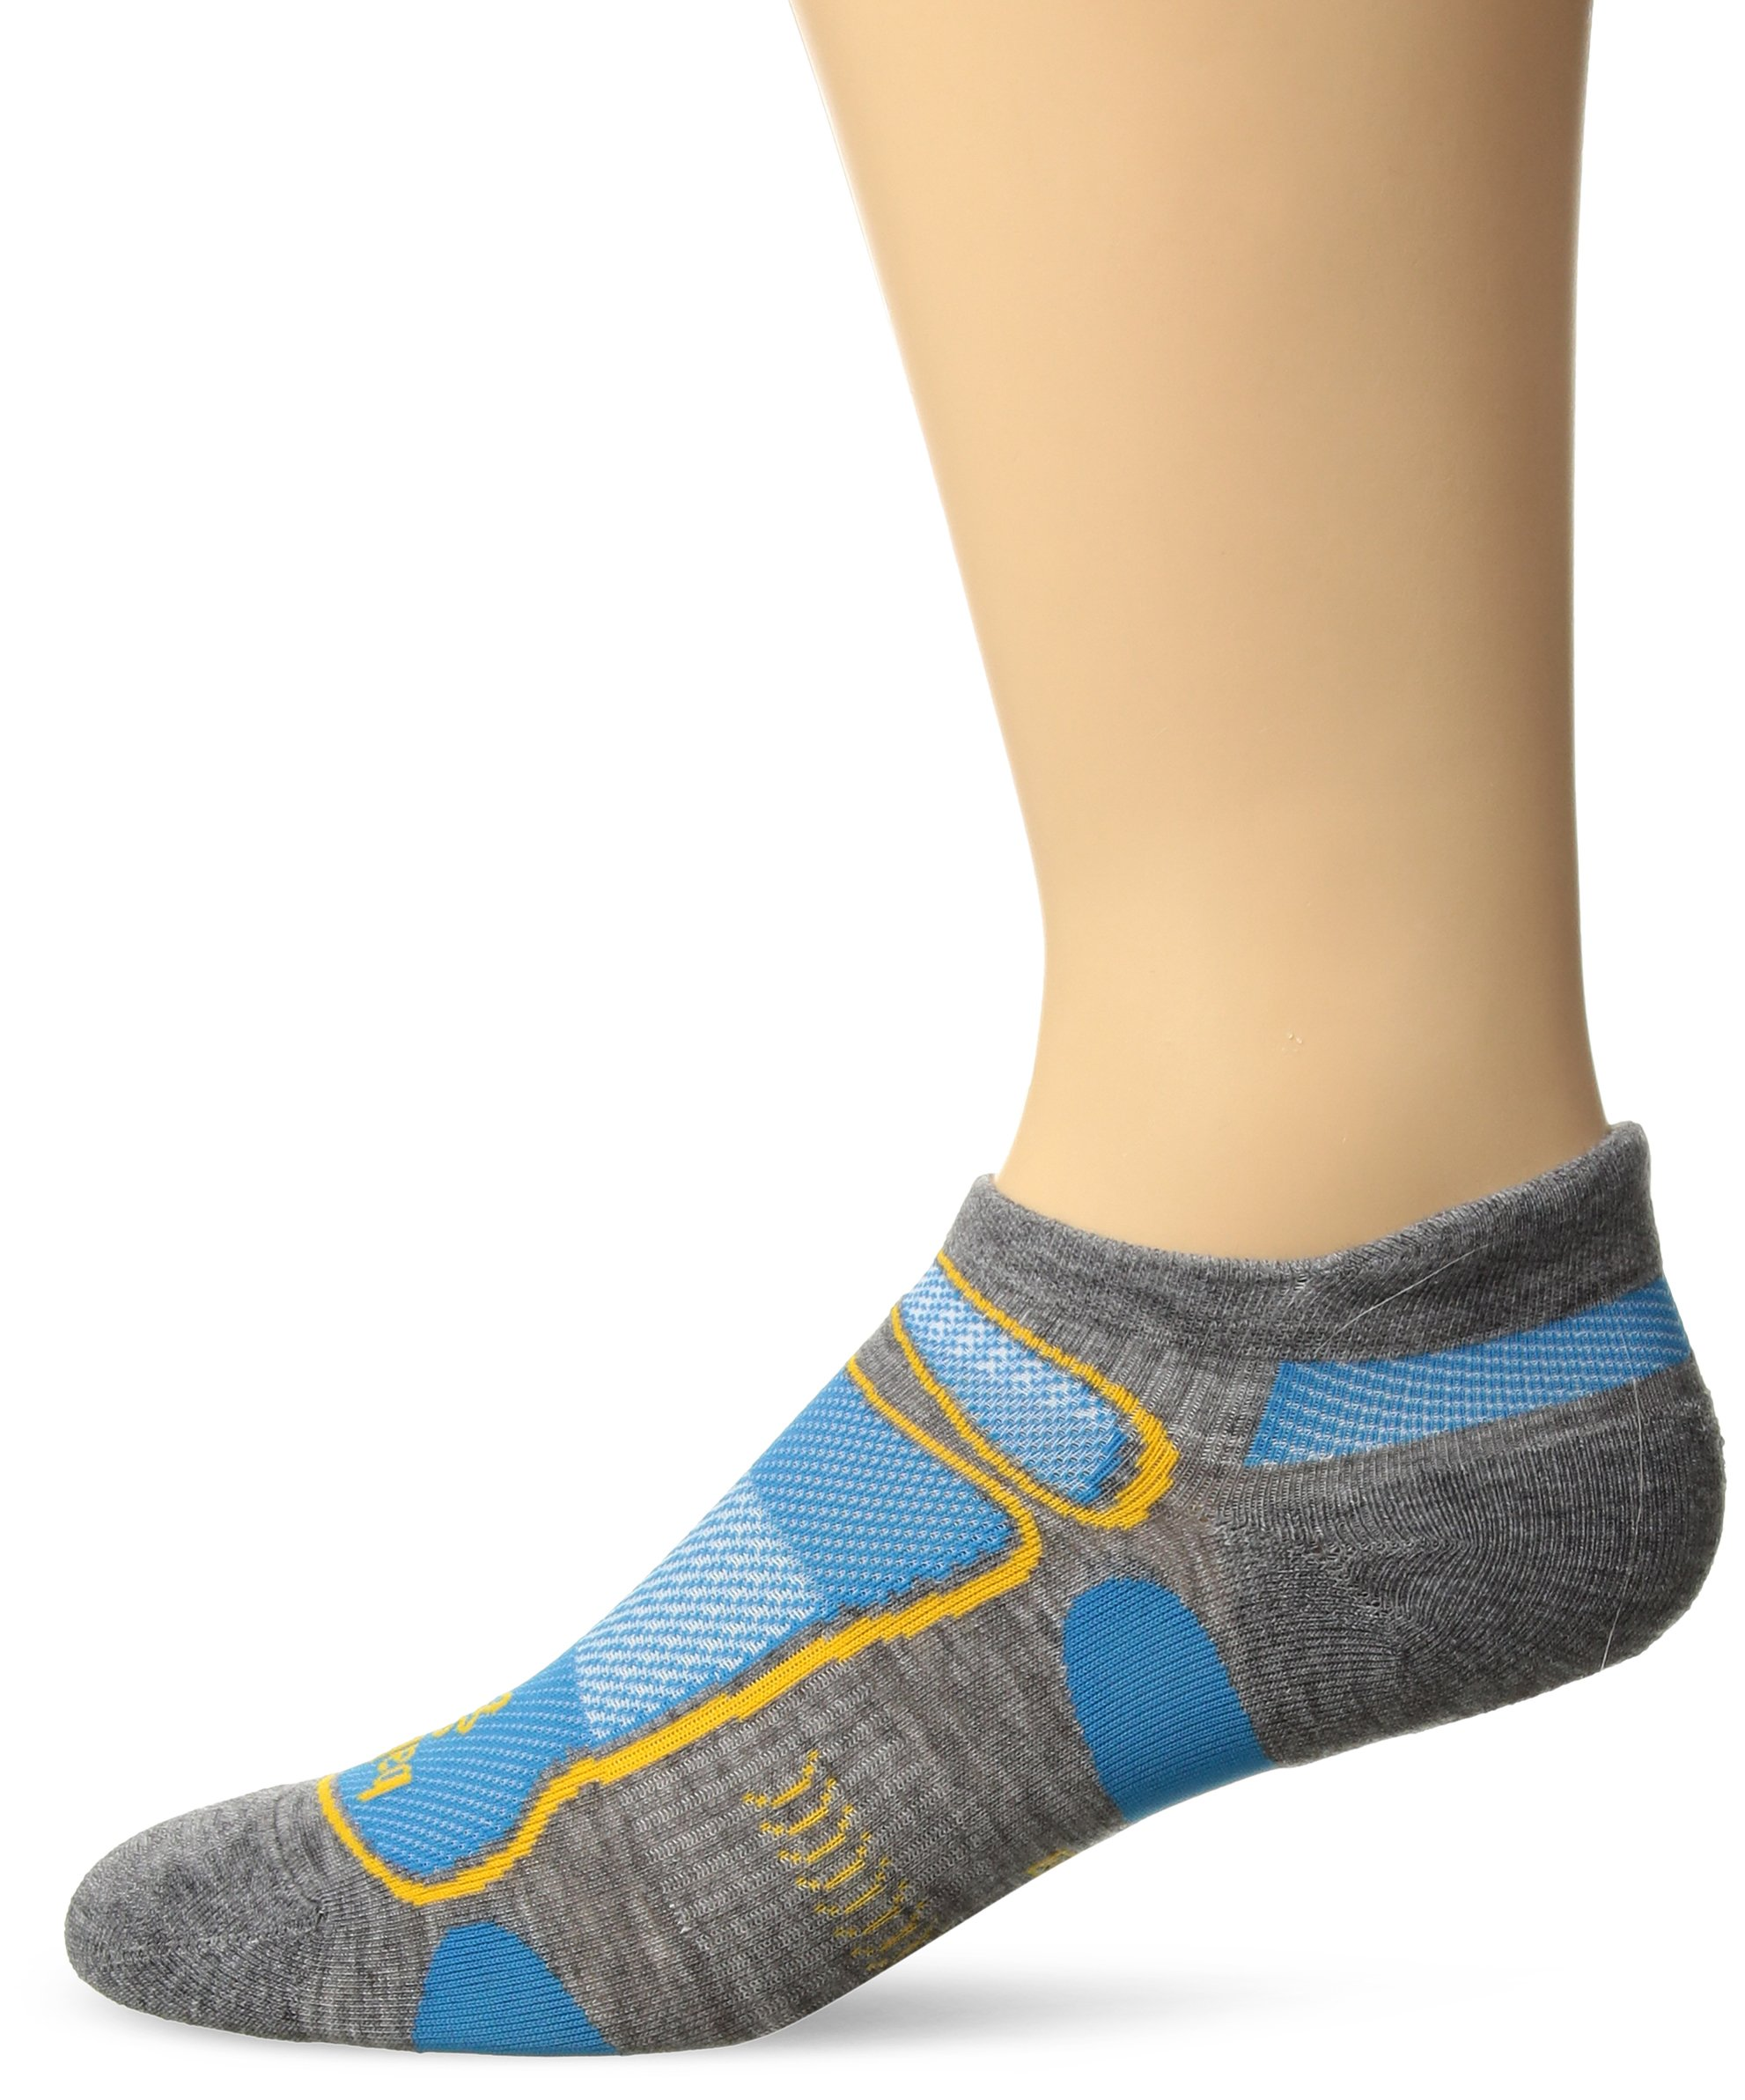 Balega Ultralight No Show Athletic Running Socks for Men and Women (1 Pair), Midgrey, Small